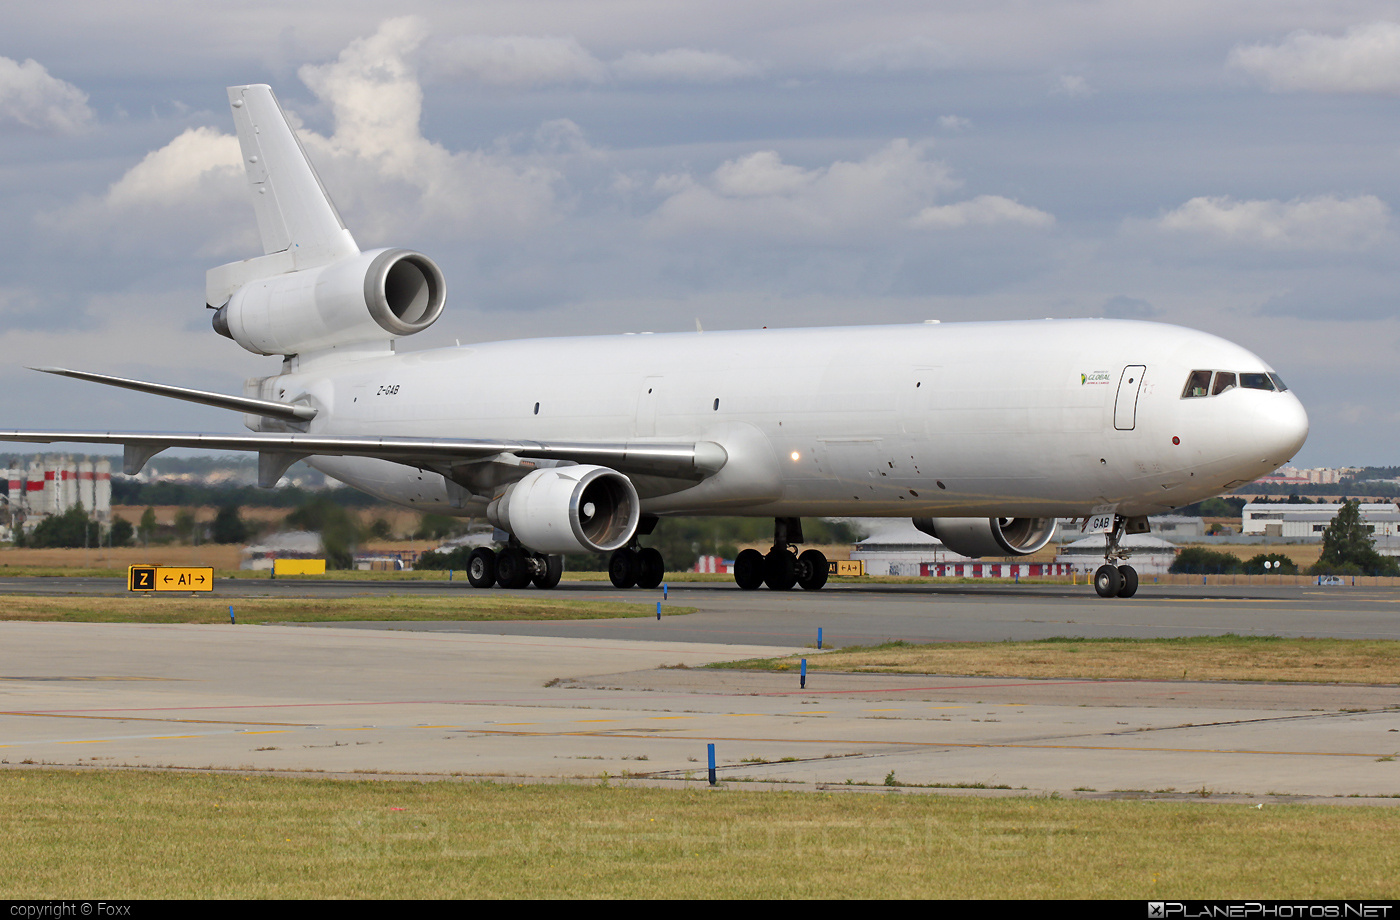 McDonnell Douglas MD-11F - Z-GAB operated by Global Africa Cargo #mcdonnelldouglas #mcdonnelldouglas11 #mcdonnelldouglas11f #mcdonnelldouglasmd11 #mcdonnelldouglasmd11f #md11 #md11f